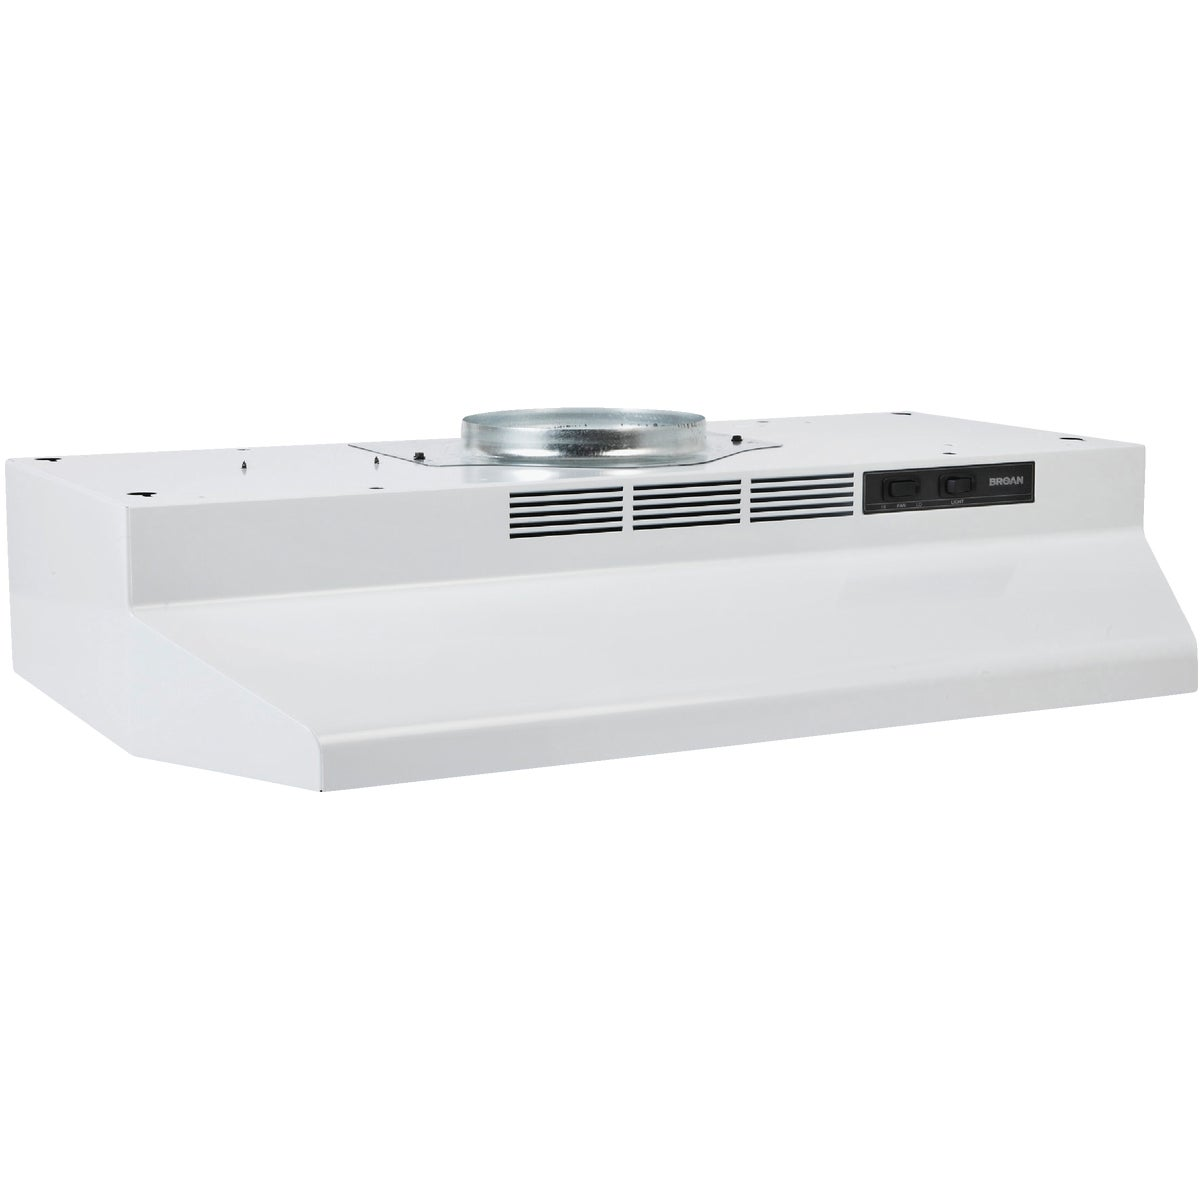 "30"" WHITE CONV RANGEHOOD - F403001 by Broan Nutone"